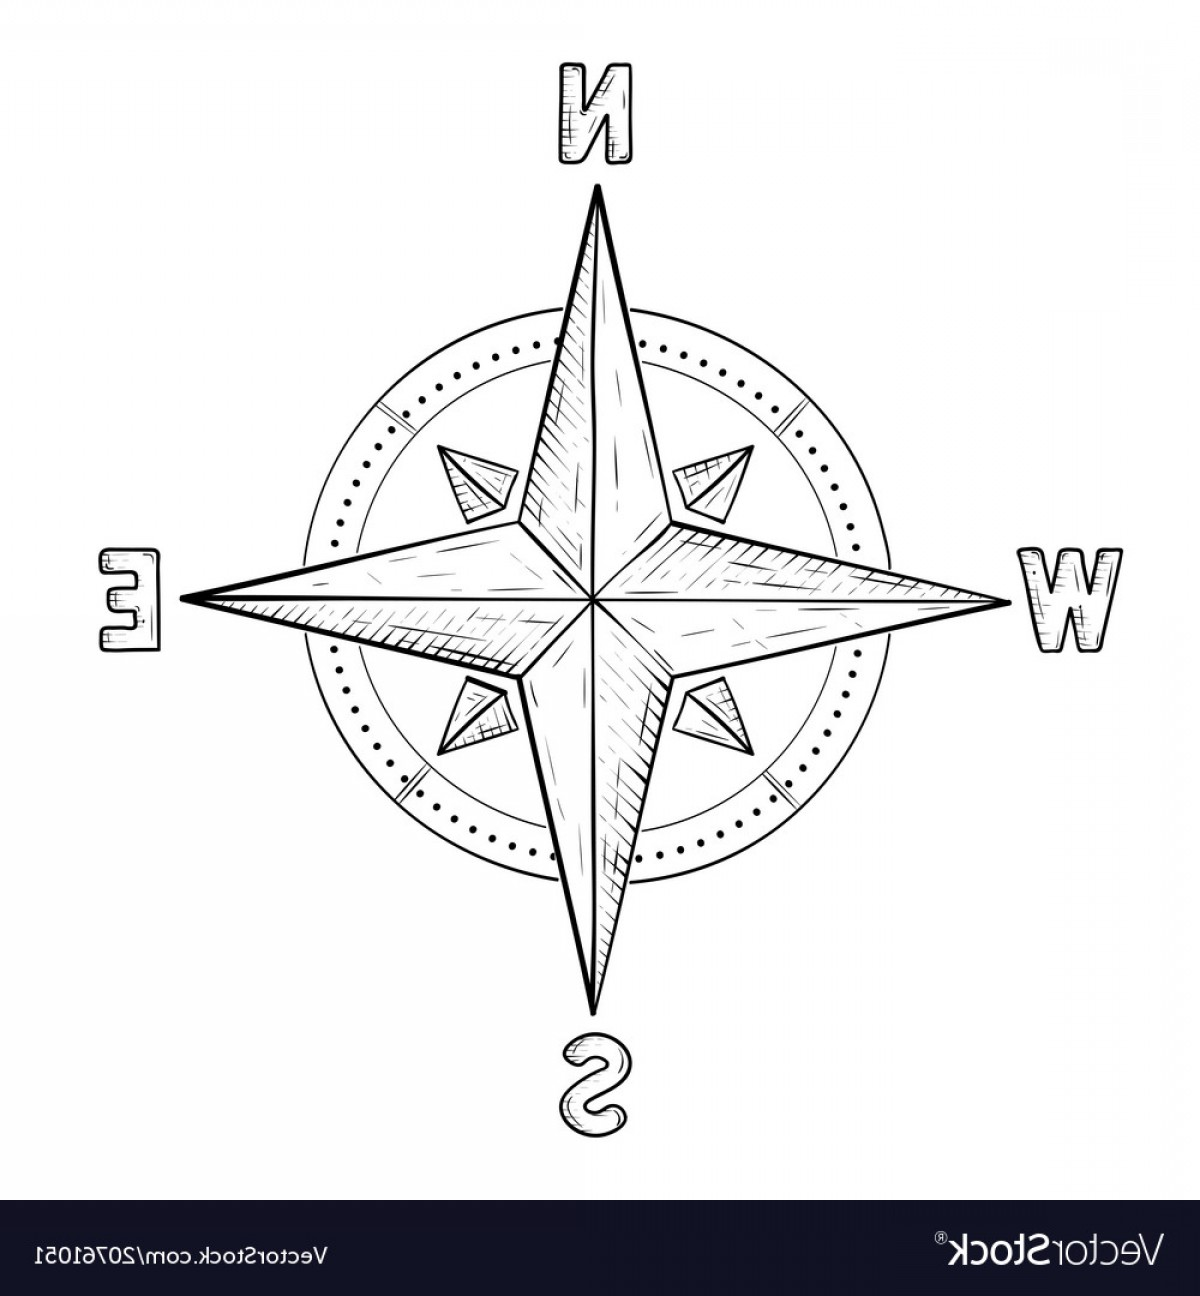 4 Point Nautical Star Vector: Compass Rose With Cardinal Points Hand Drawn Vector